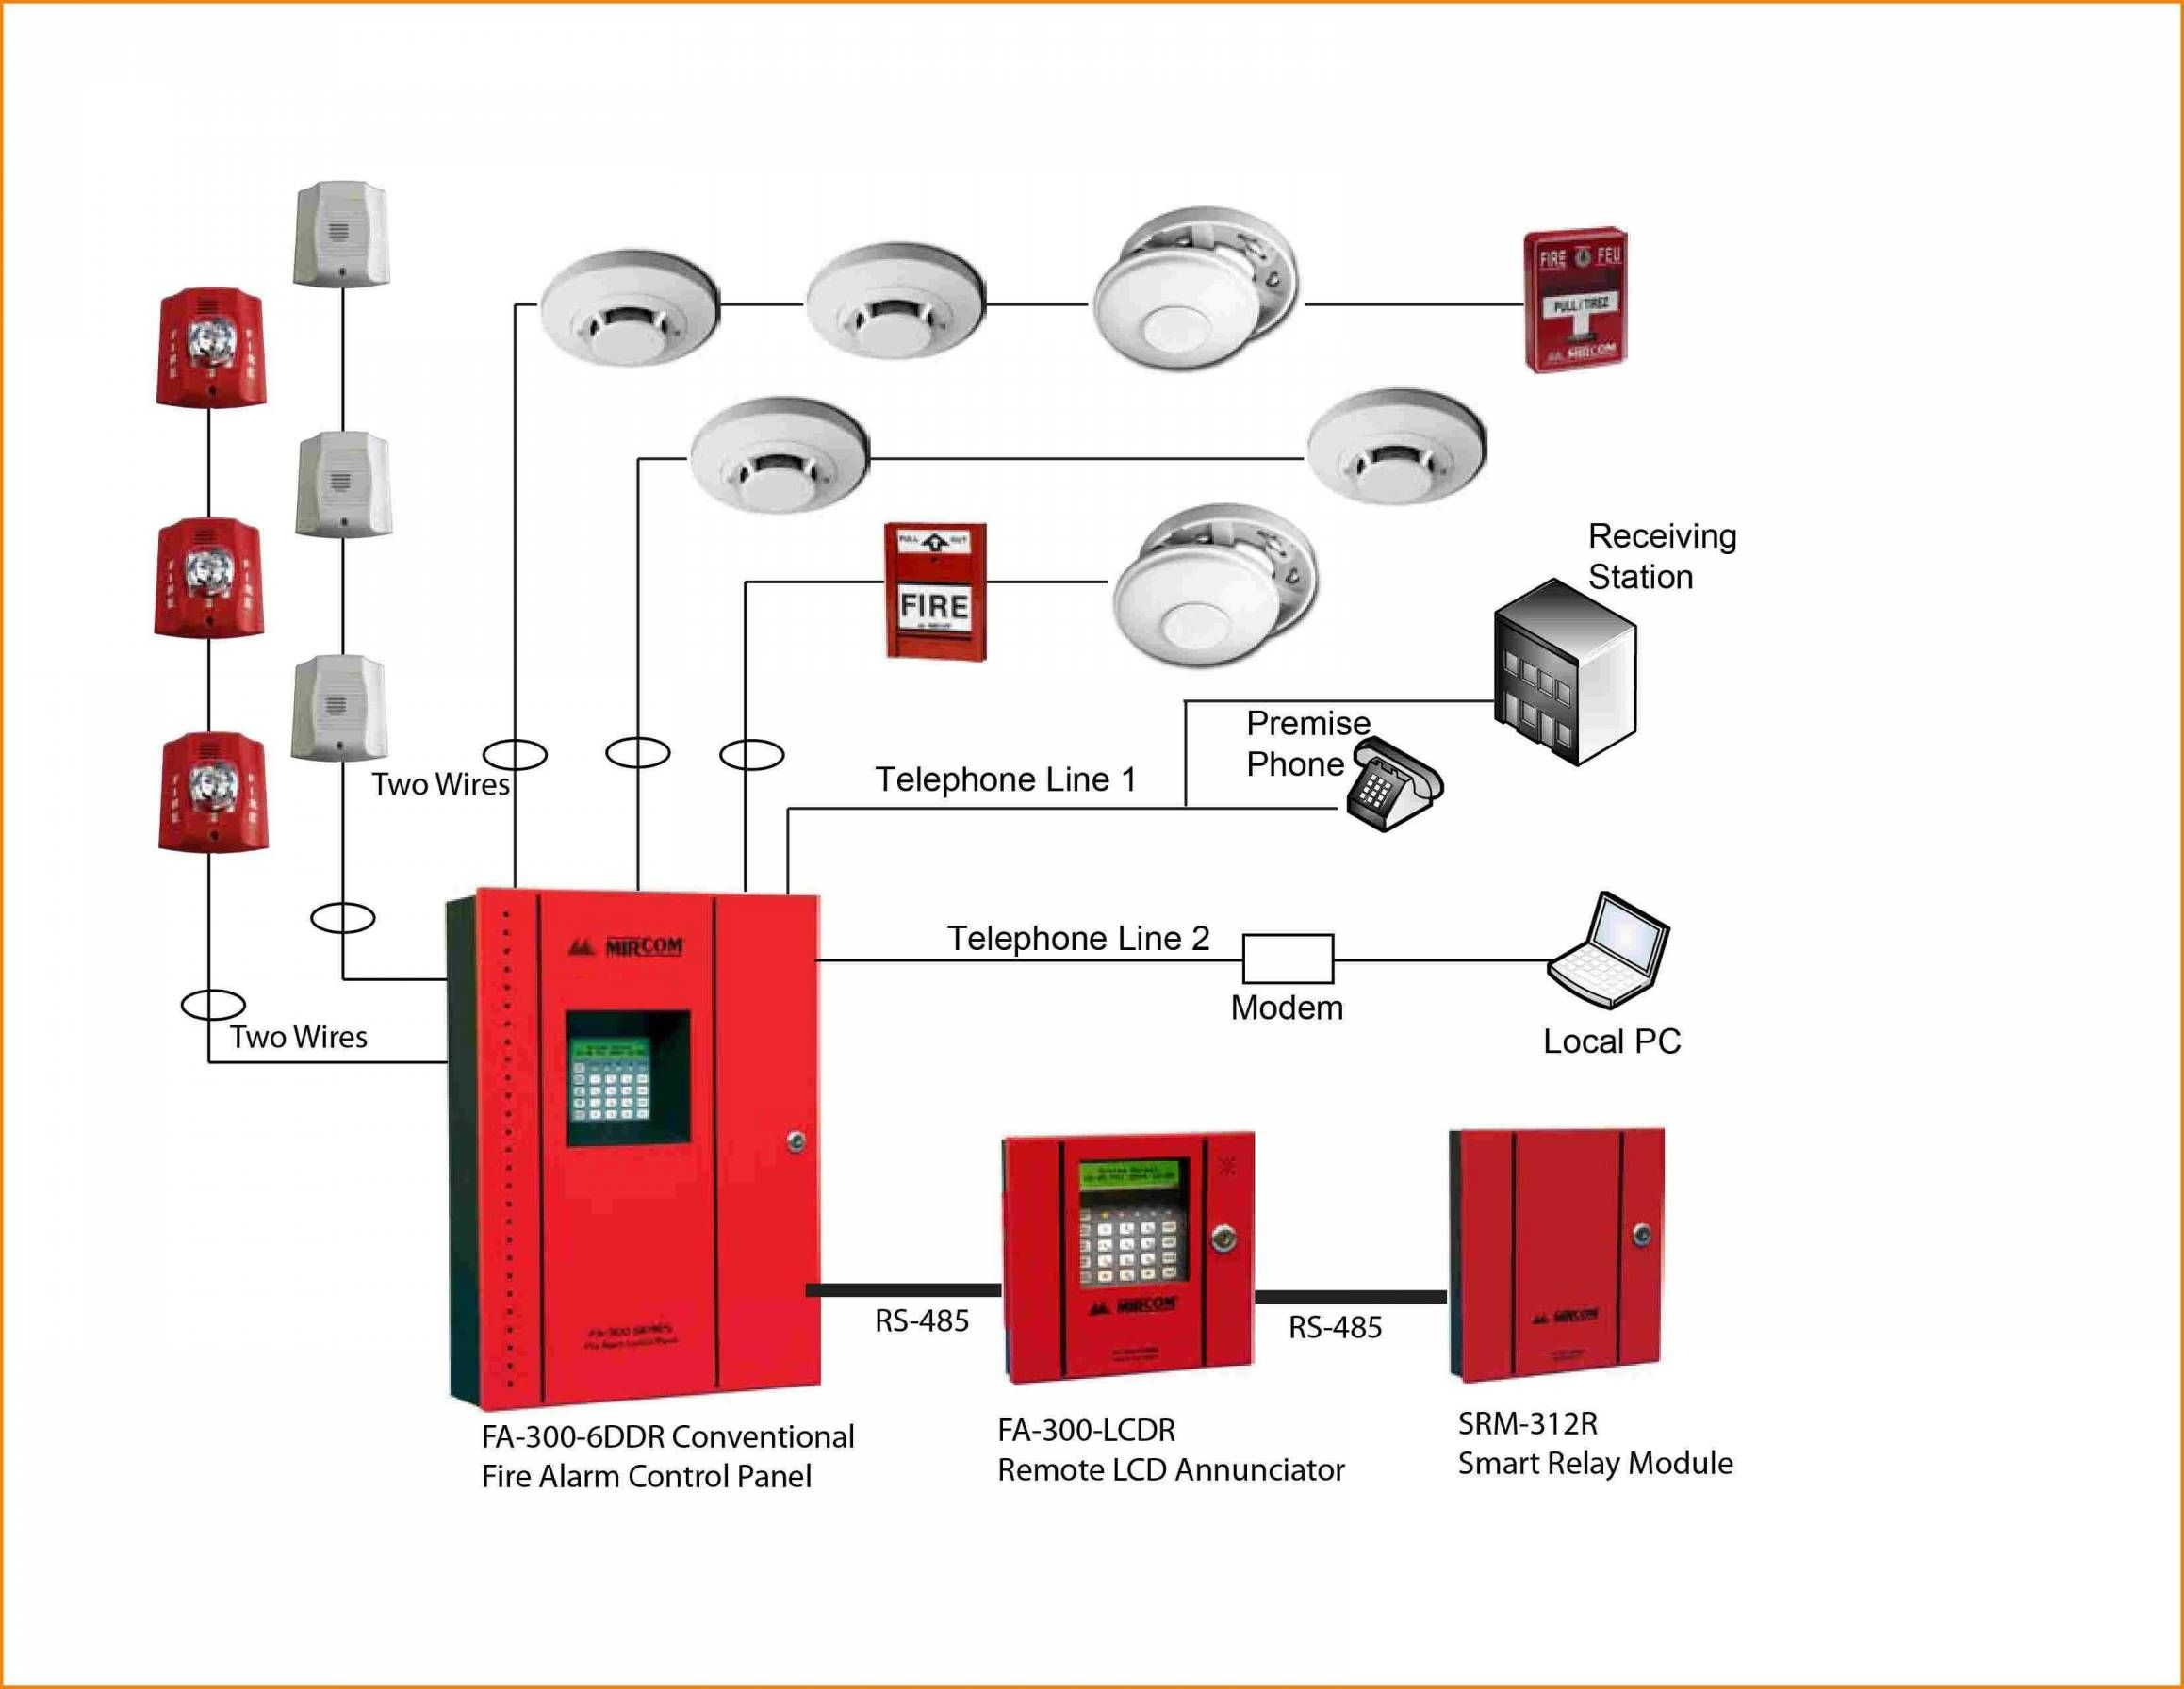 16+ Alarm Panel Wiring Diagram | Fire alarm system, Fire alarm, Fire  protection systemPinterest